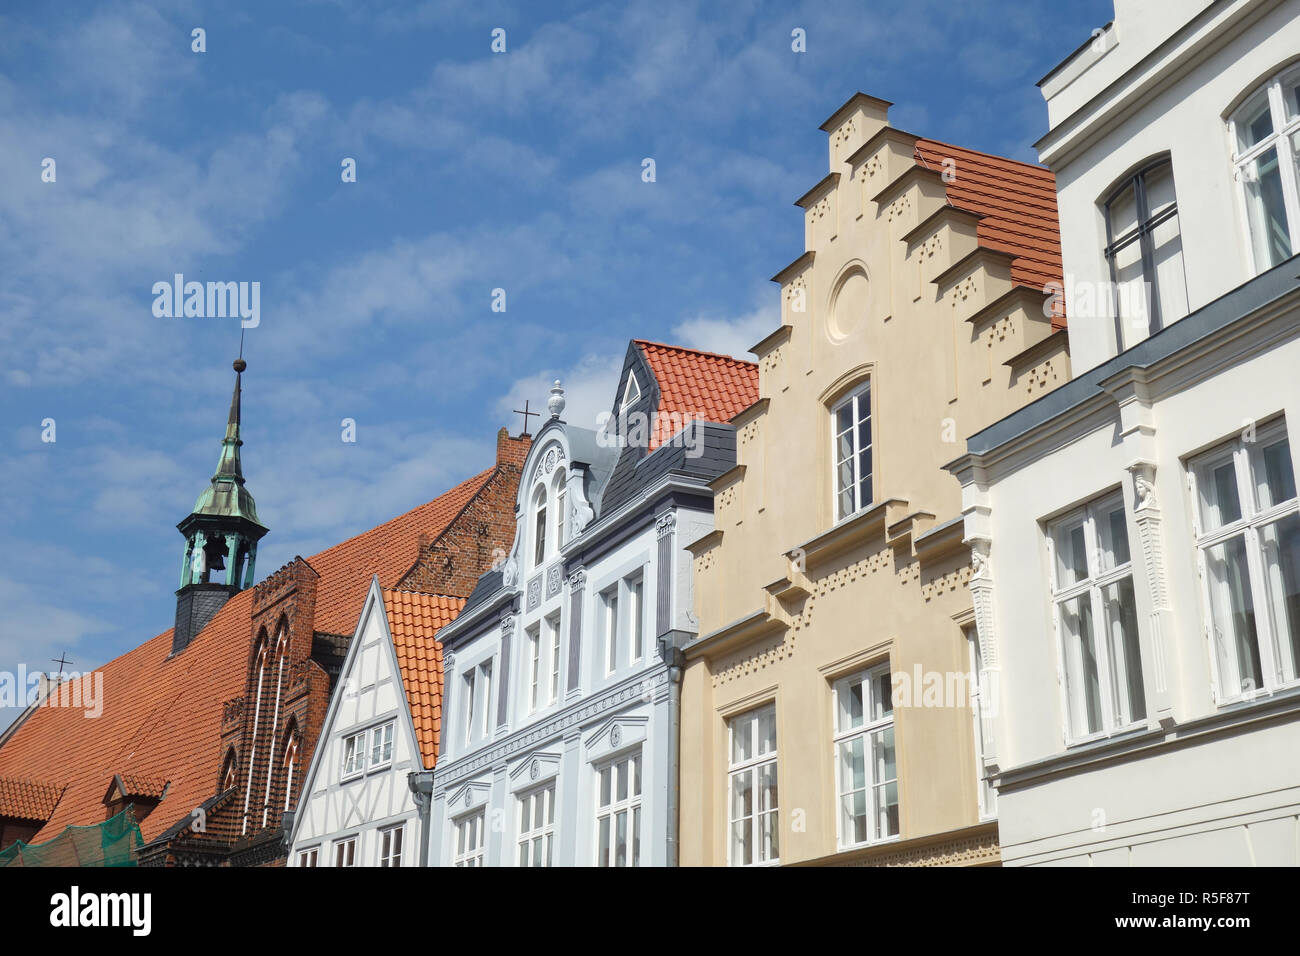 house gable of the old town of wismar - Stock Image